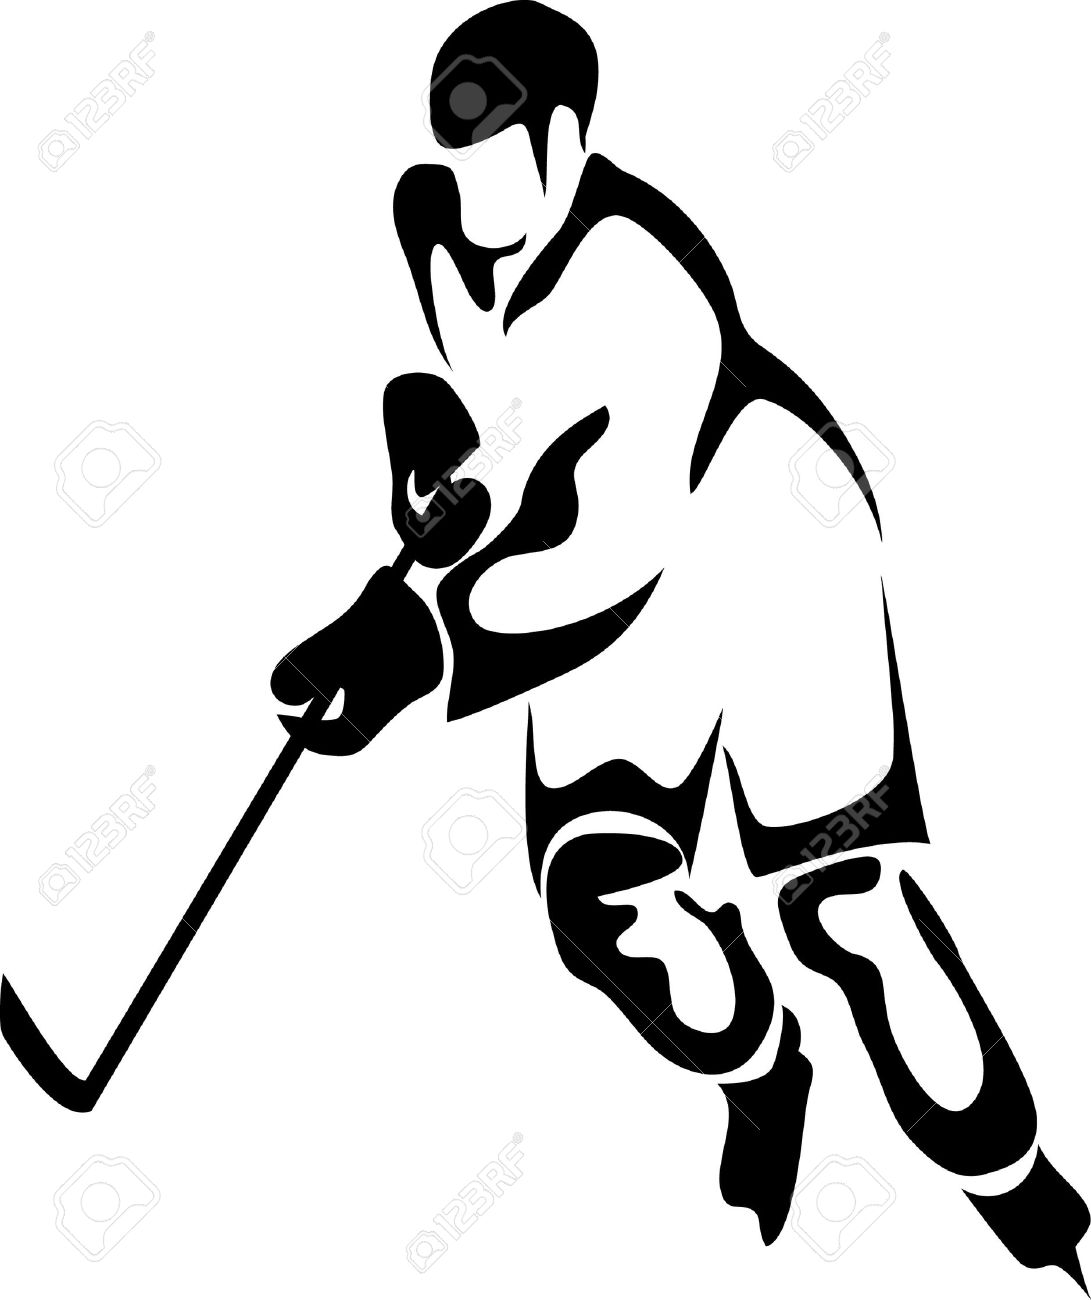 hight resolution of hockey player clipart